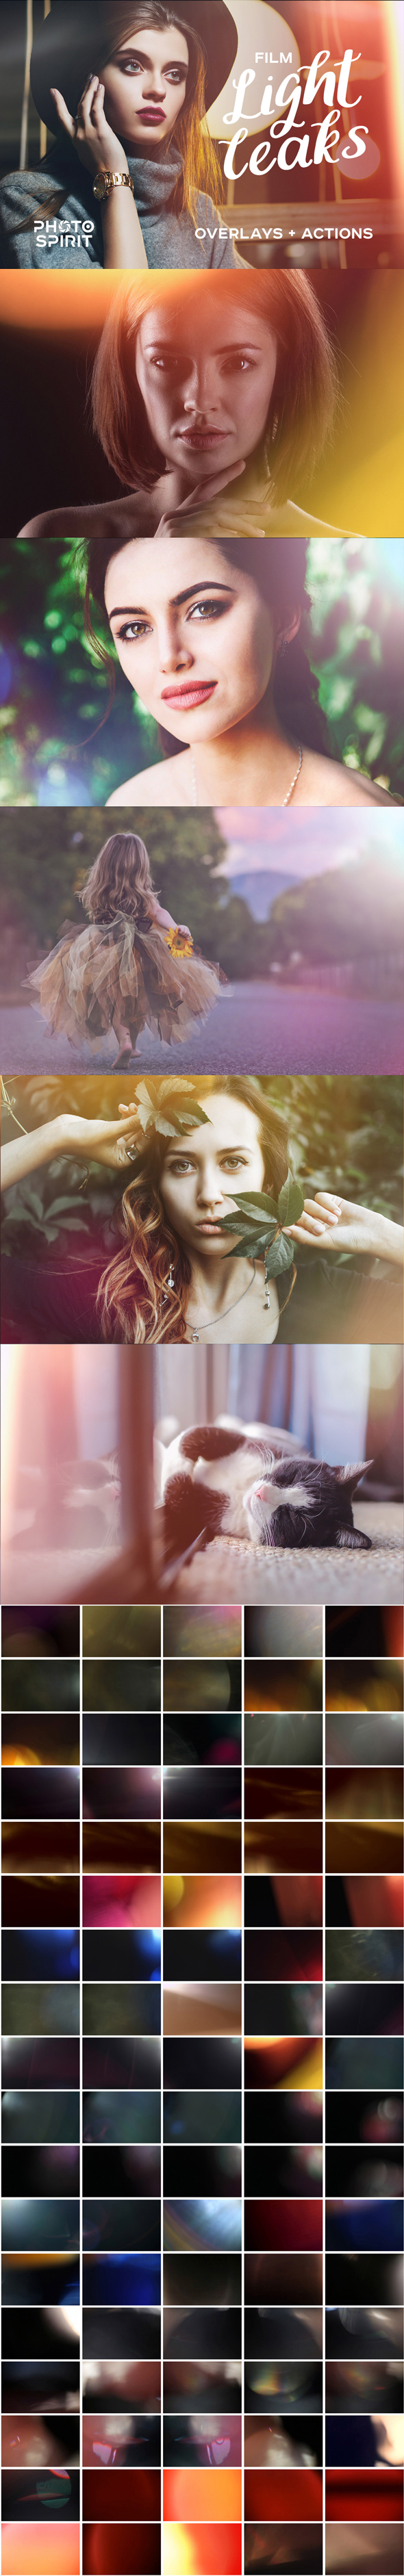 Film Light Leaks Overlays - Photo Effects Actions